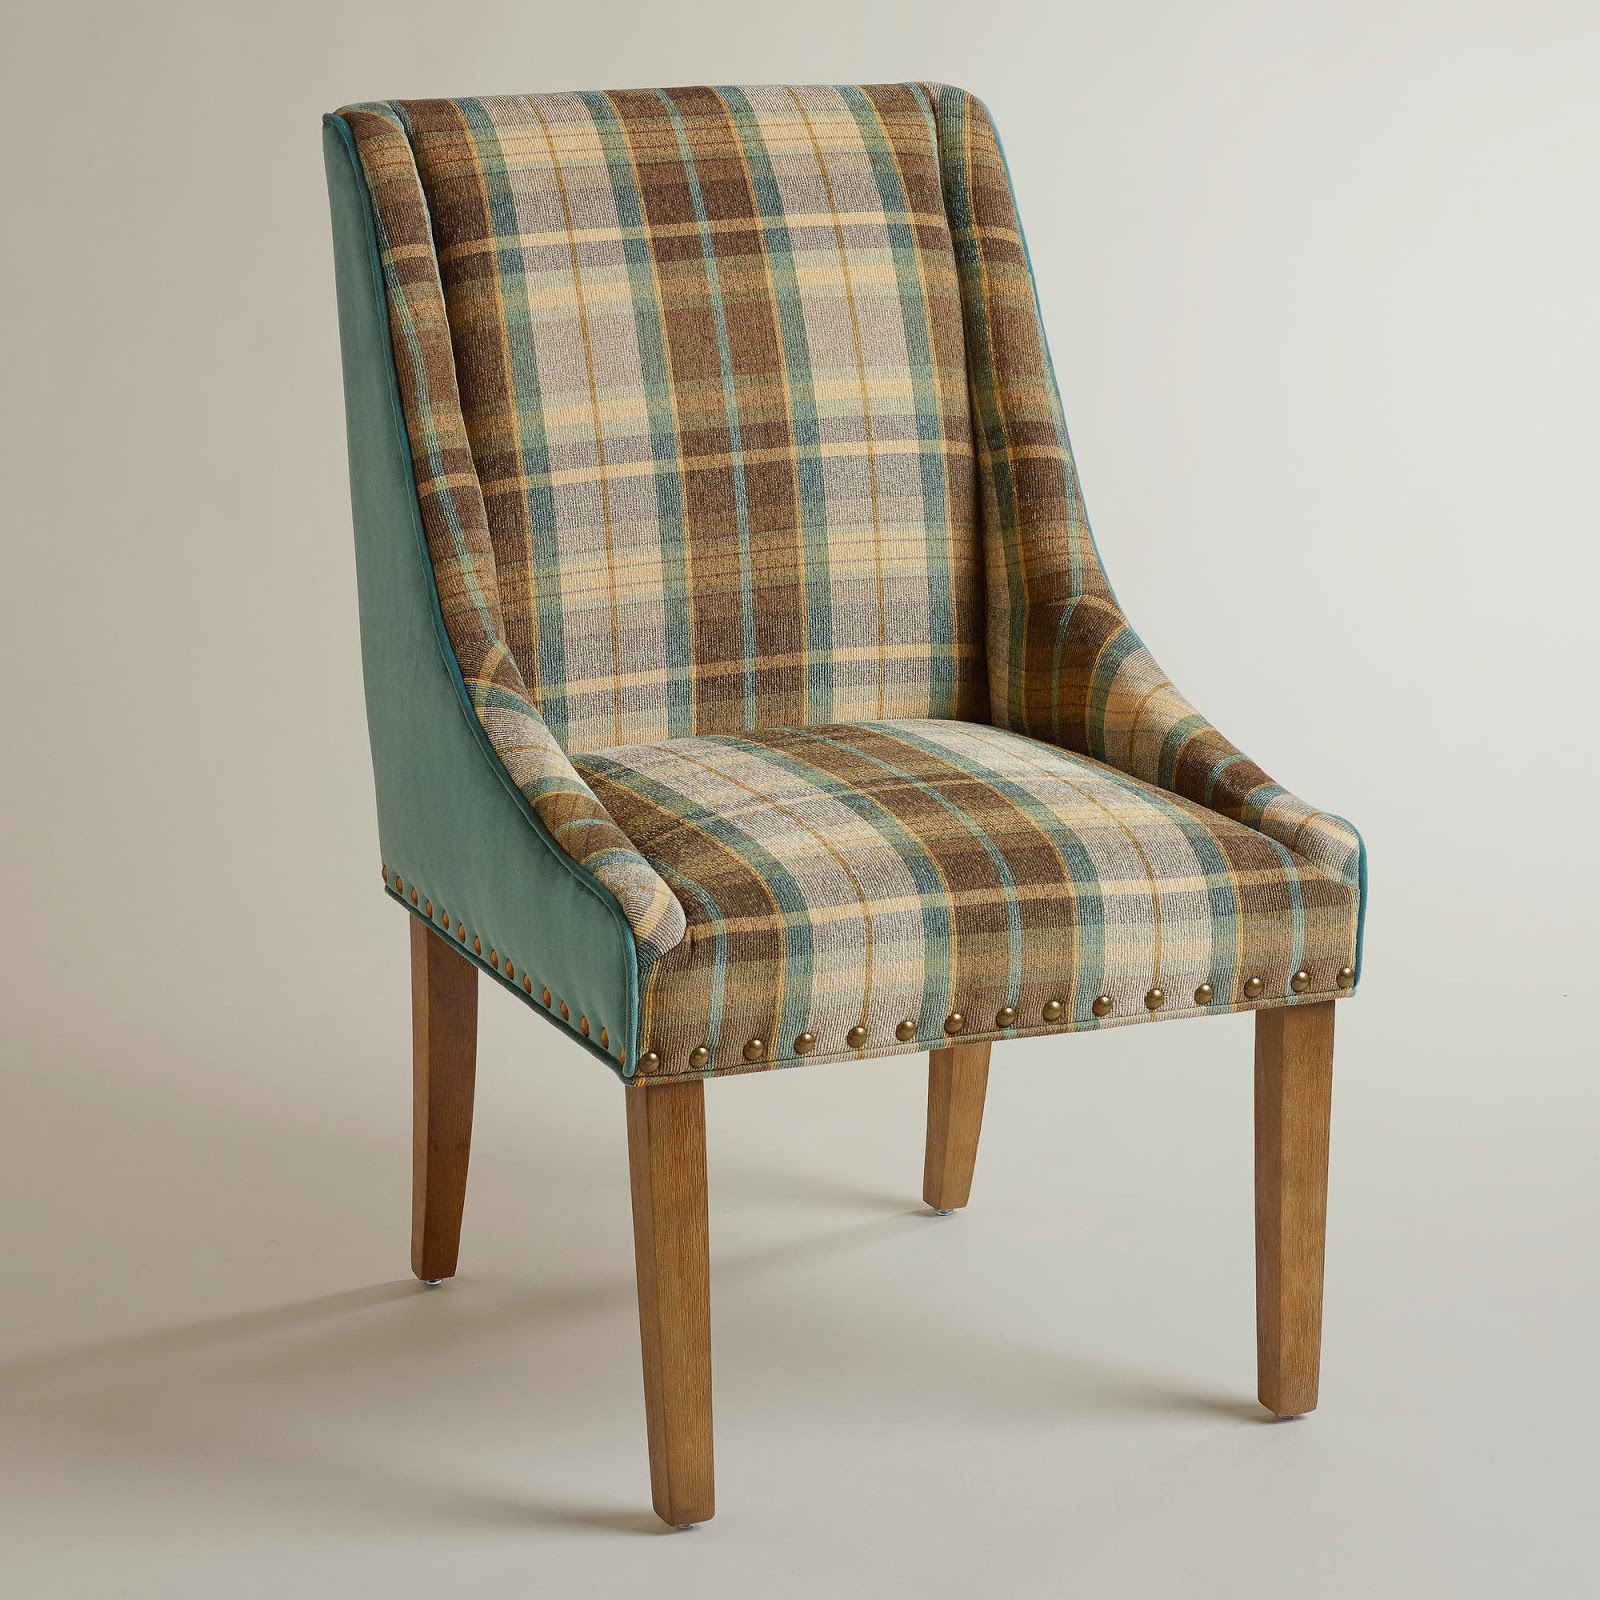 Plaid Chair Retropolitan Plaid Is Rad